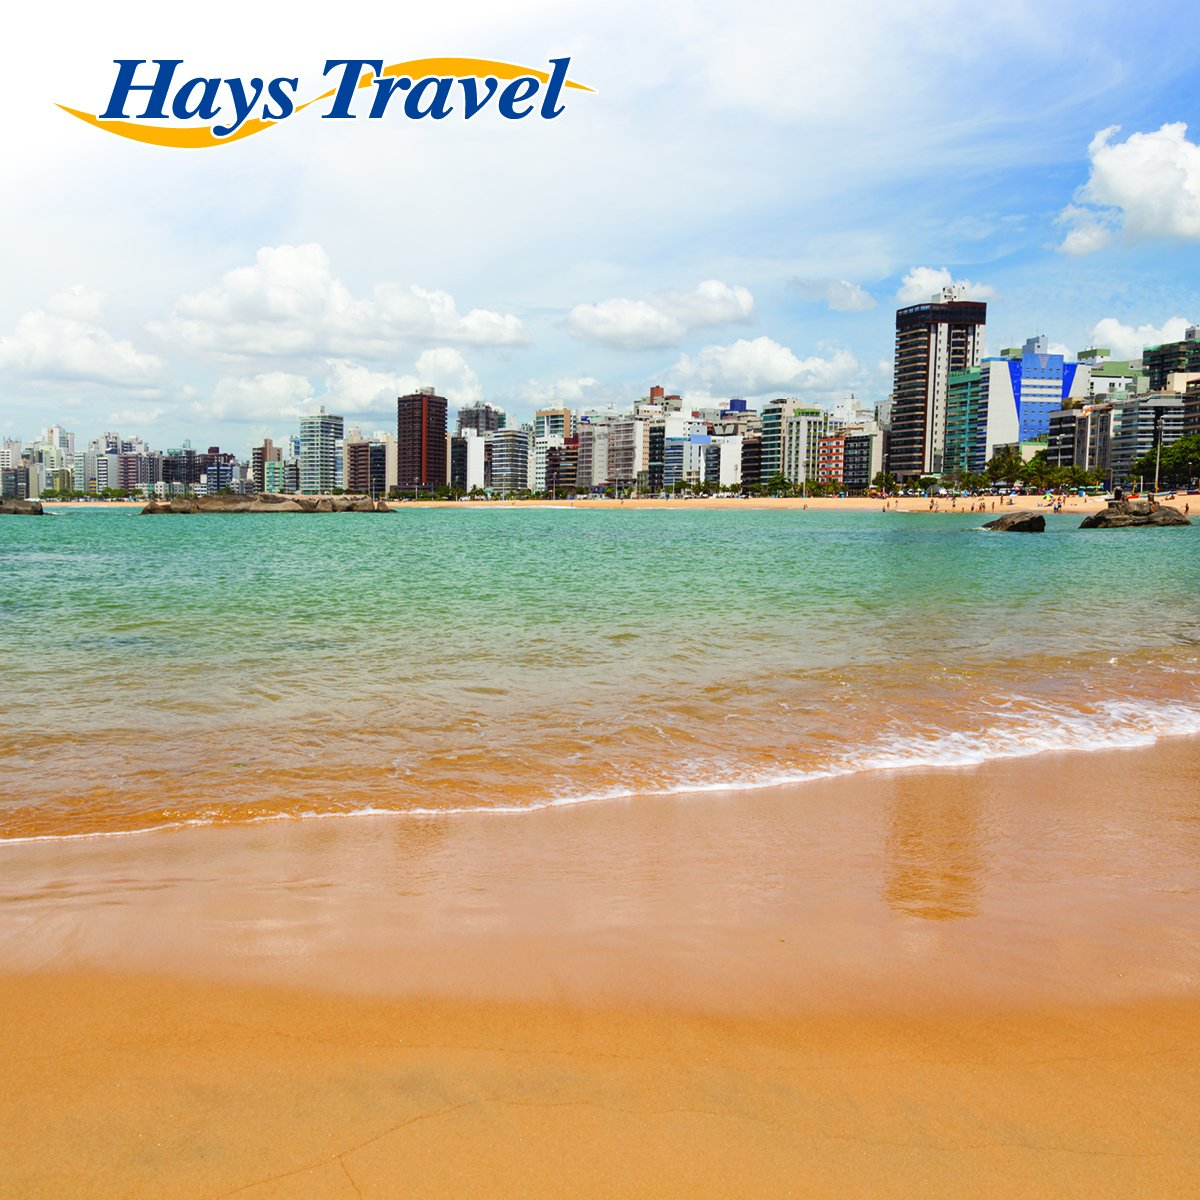 hays travel - photo #26